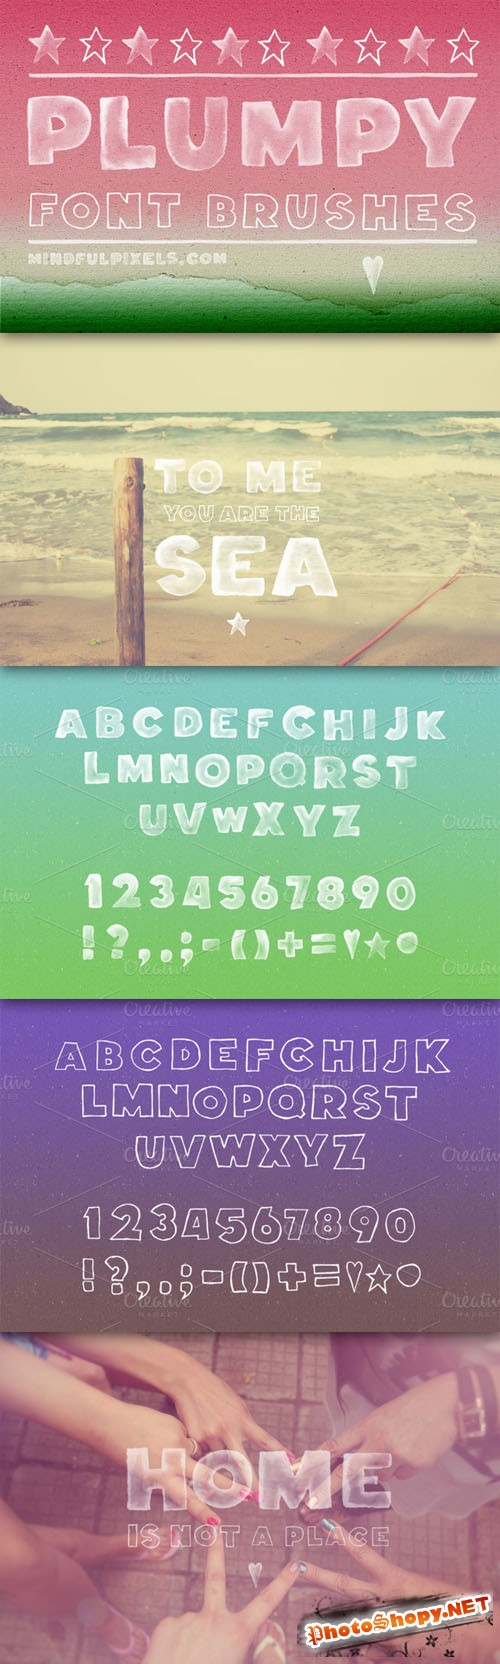 CreativeMarket - Plumpy Font Brushes 7110